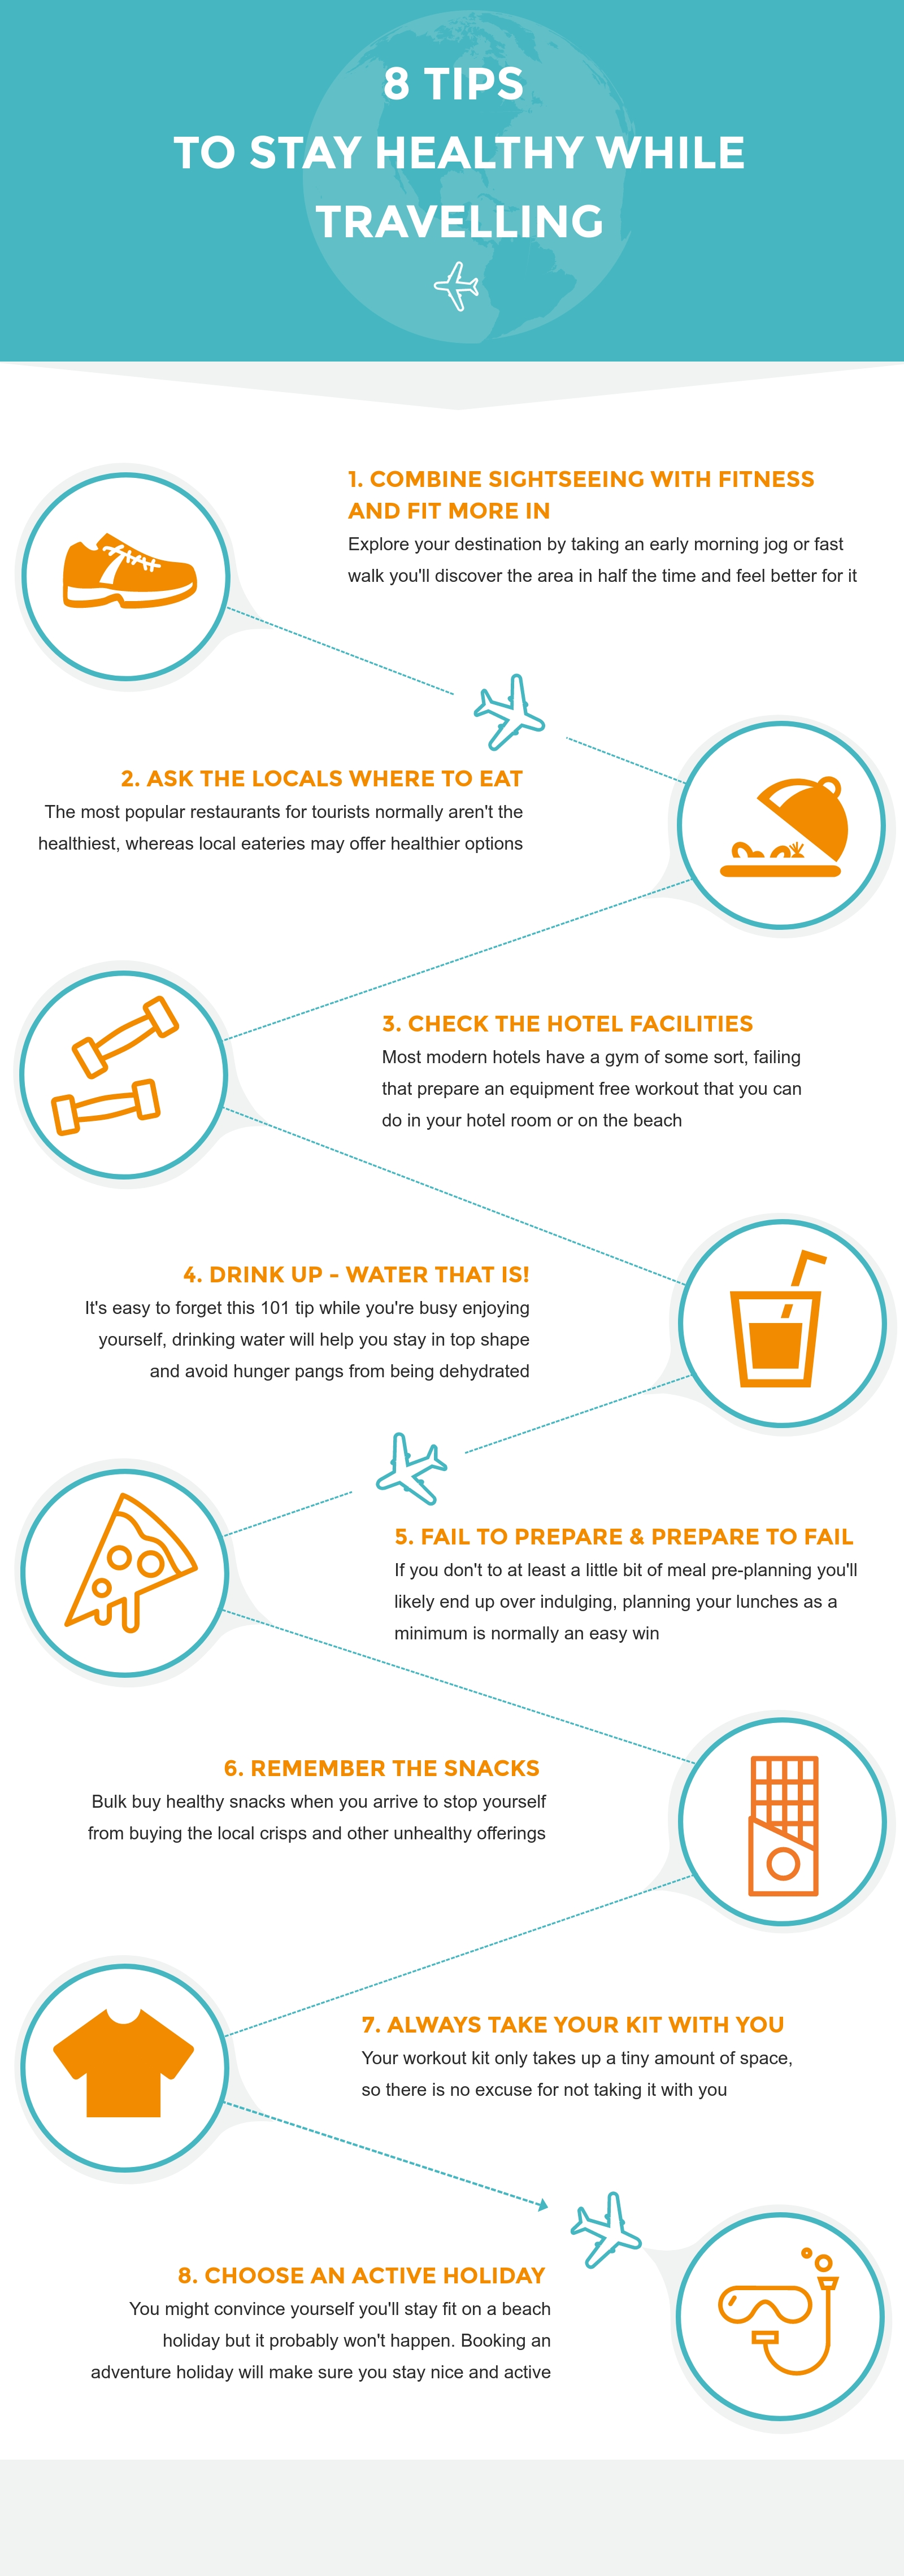 stay healthy while travelling tips infographic